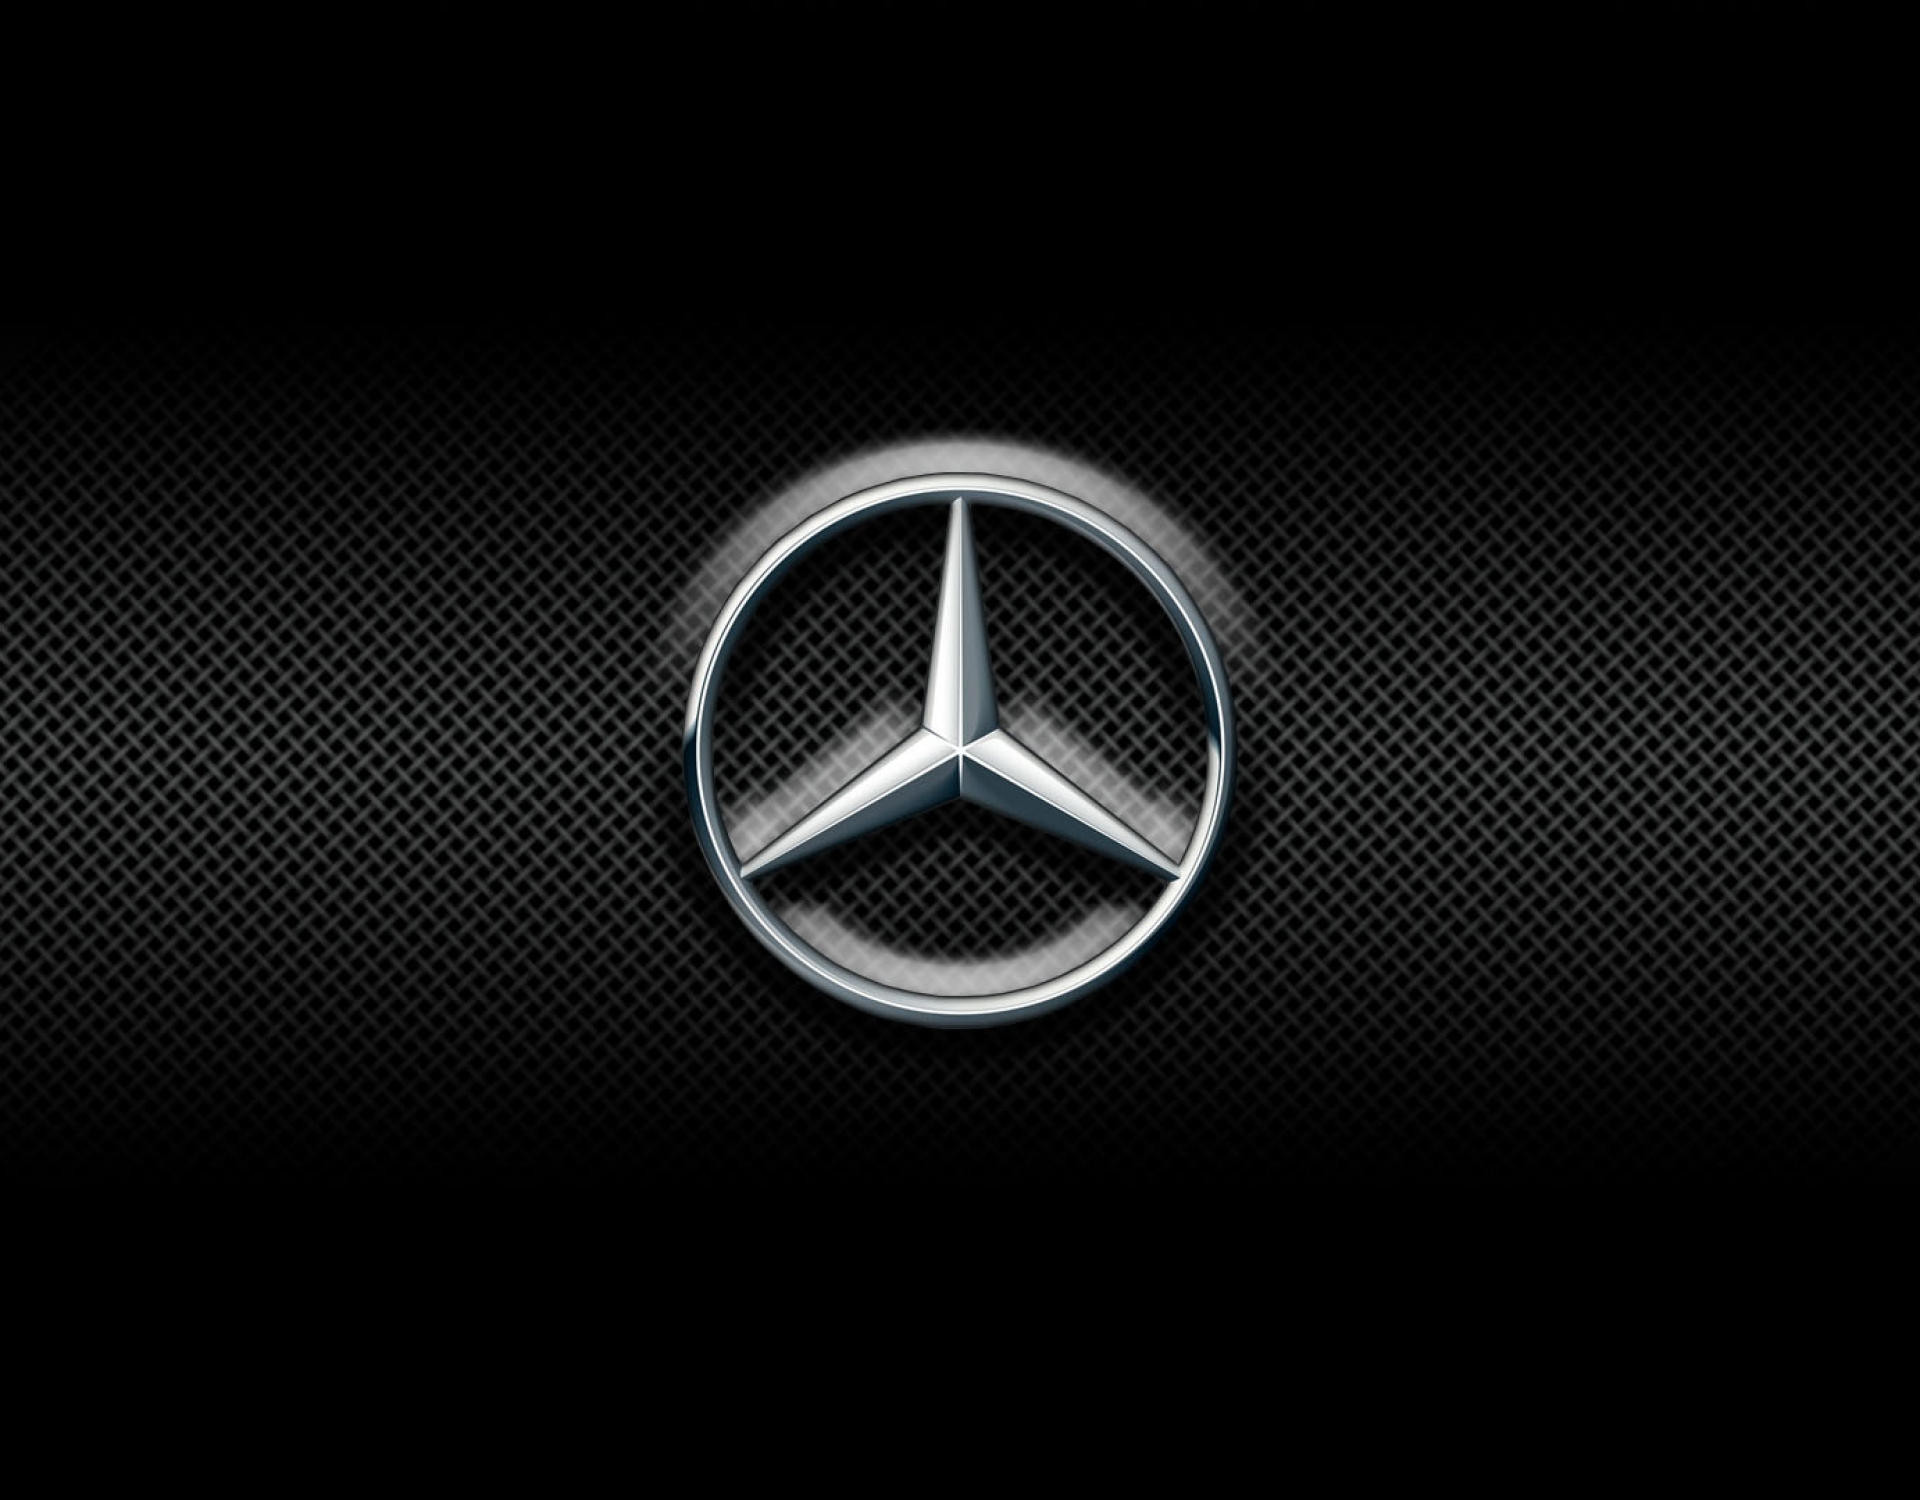 Wallpaper mercedes benz f1